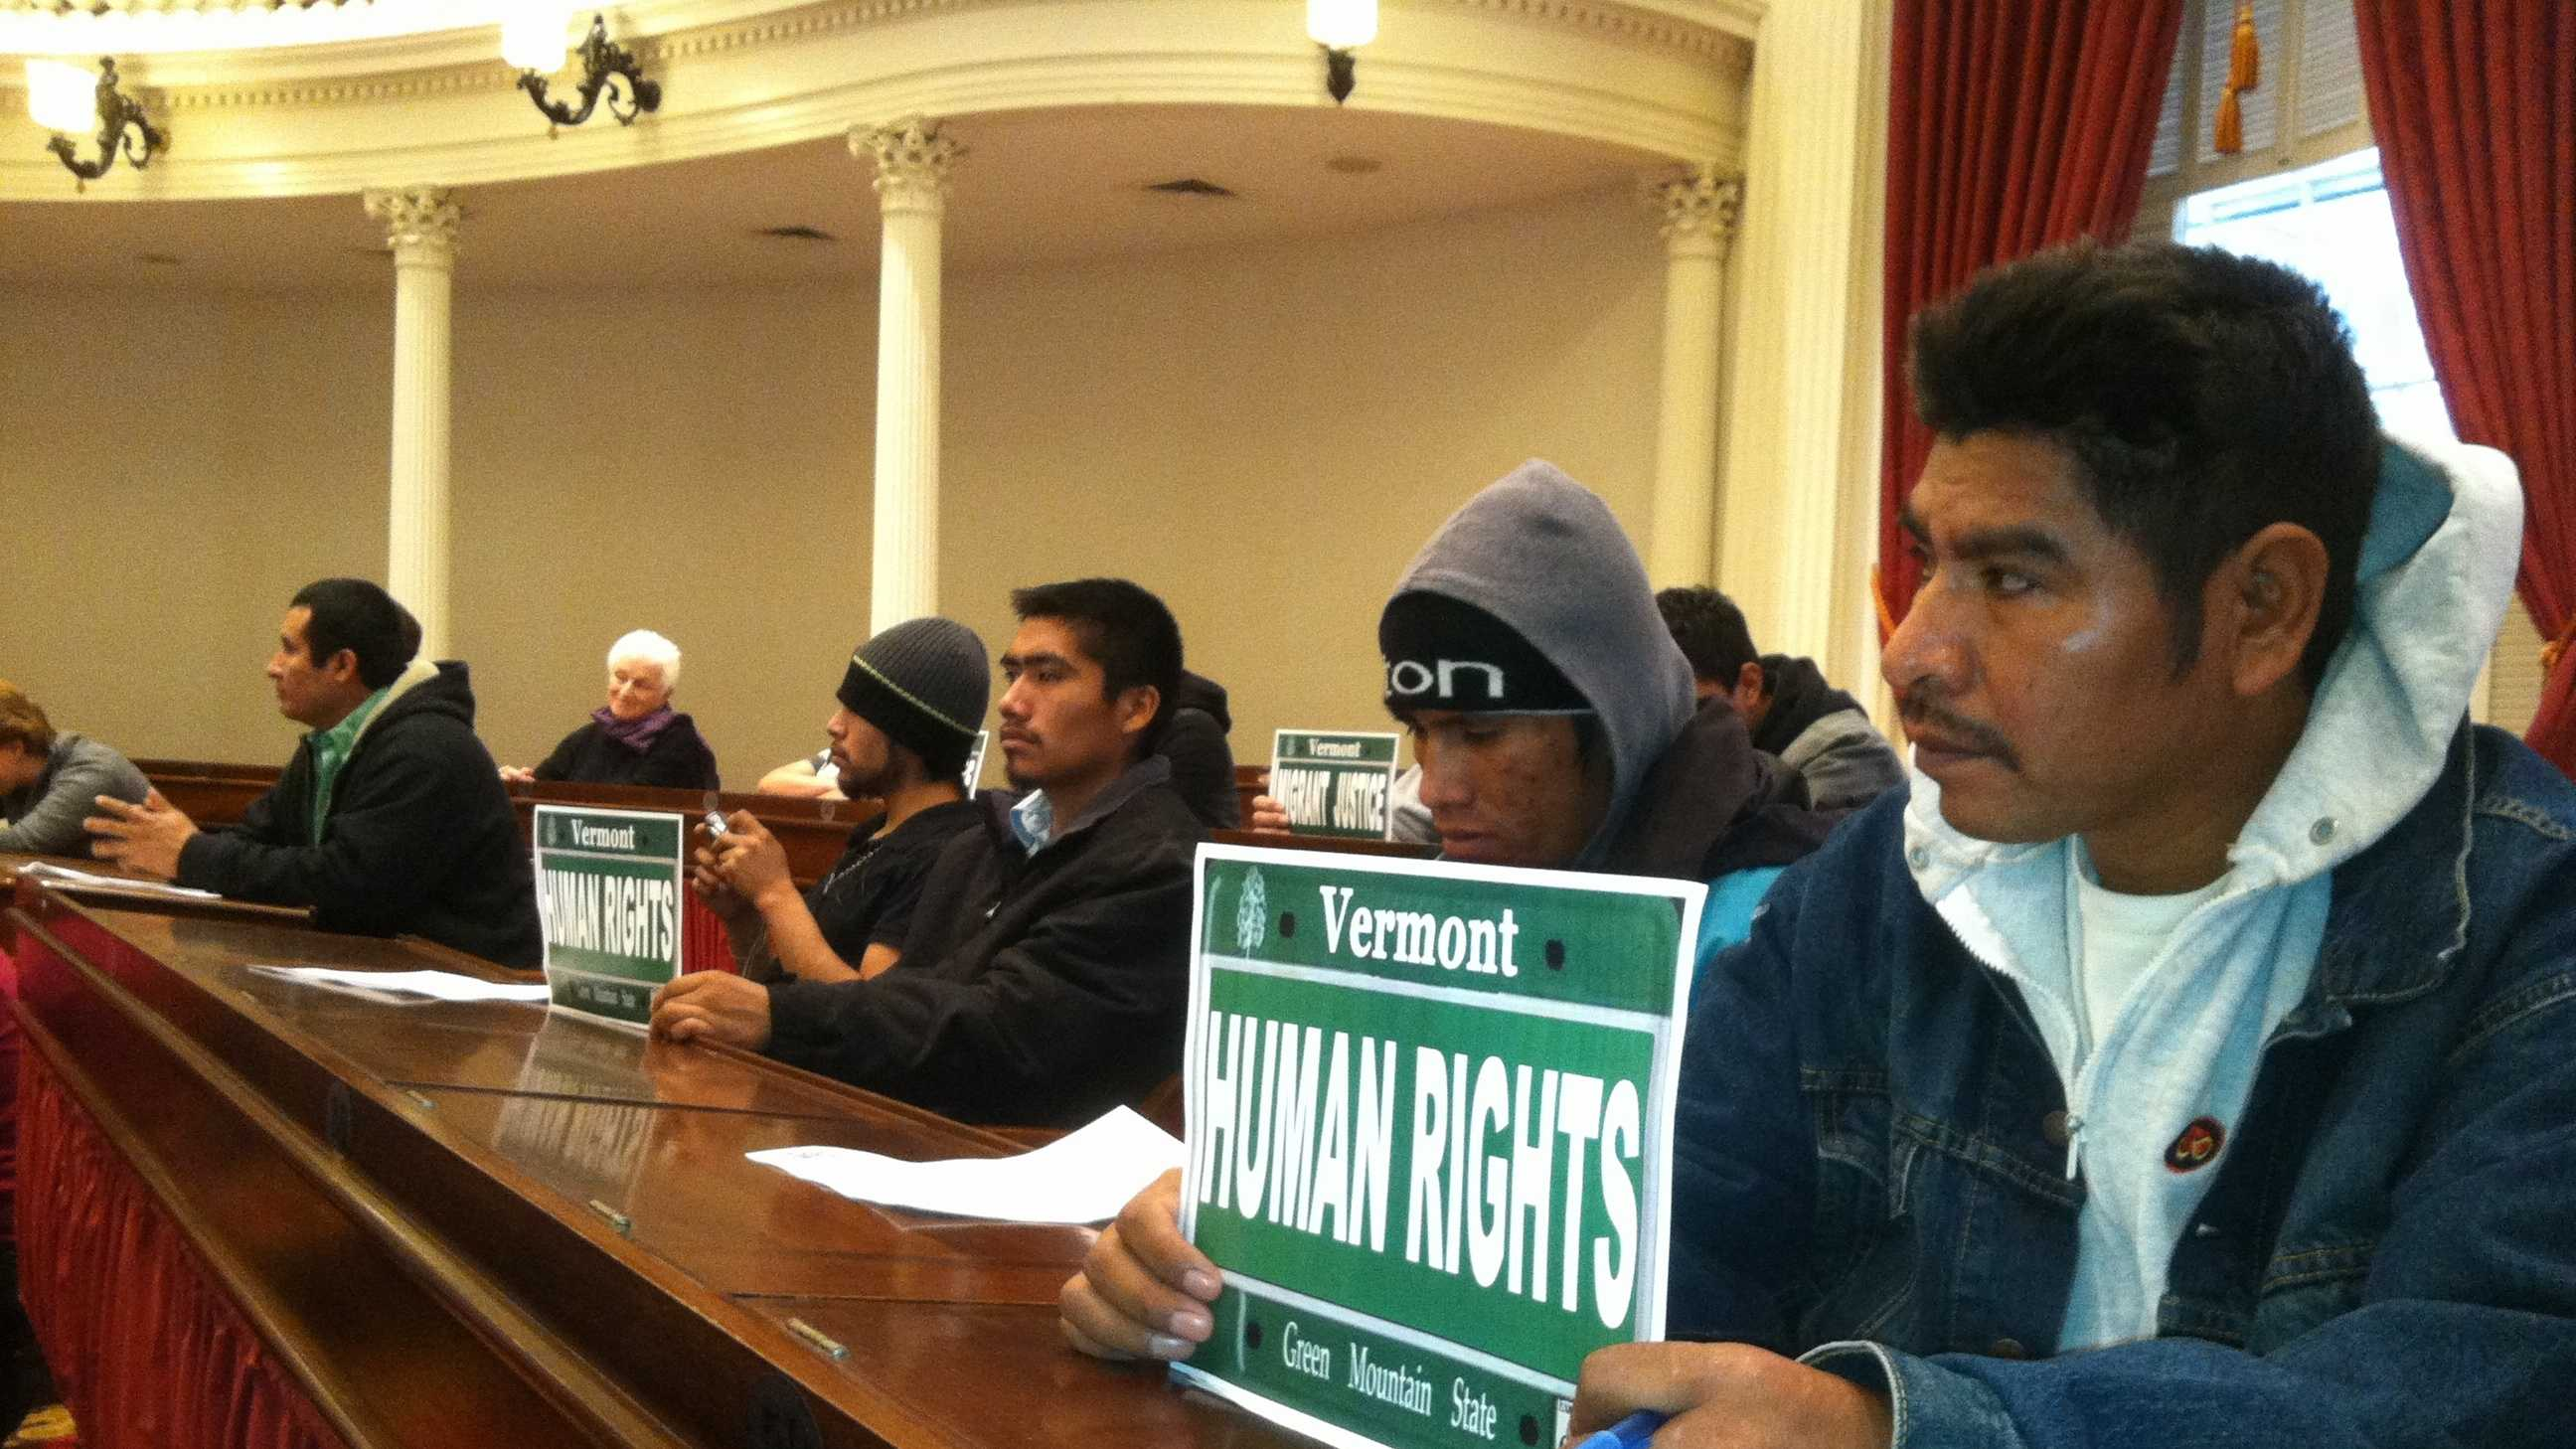 Migrant workers attend Statehouse hearing on issuing drivers license